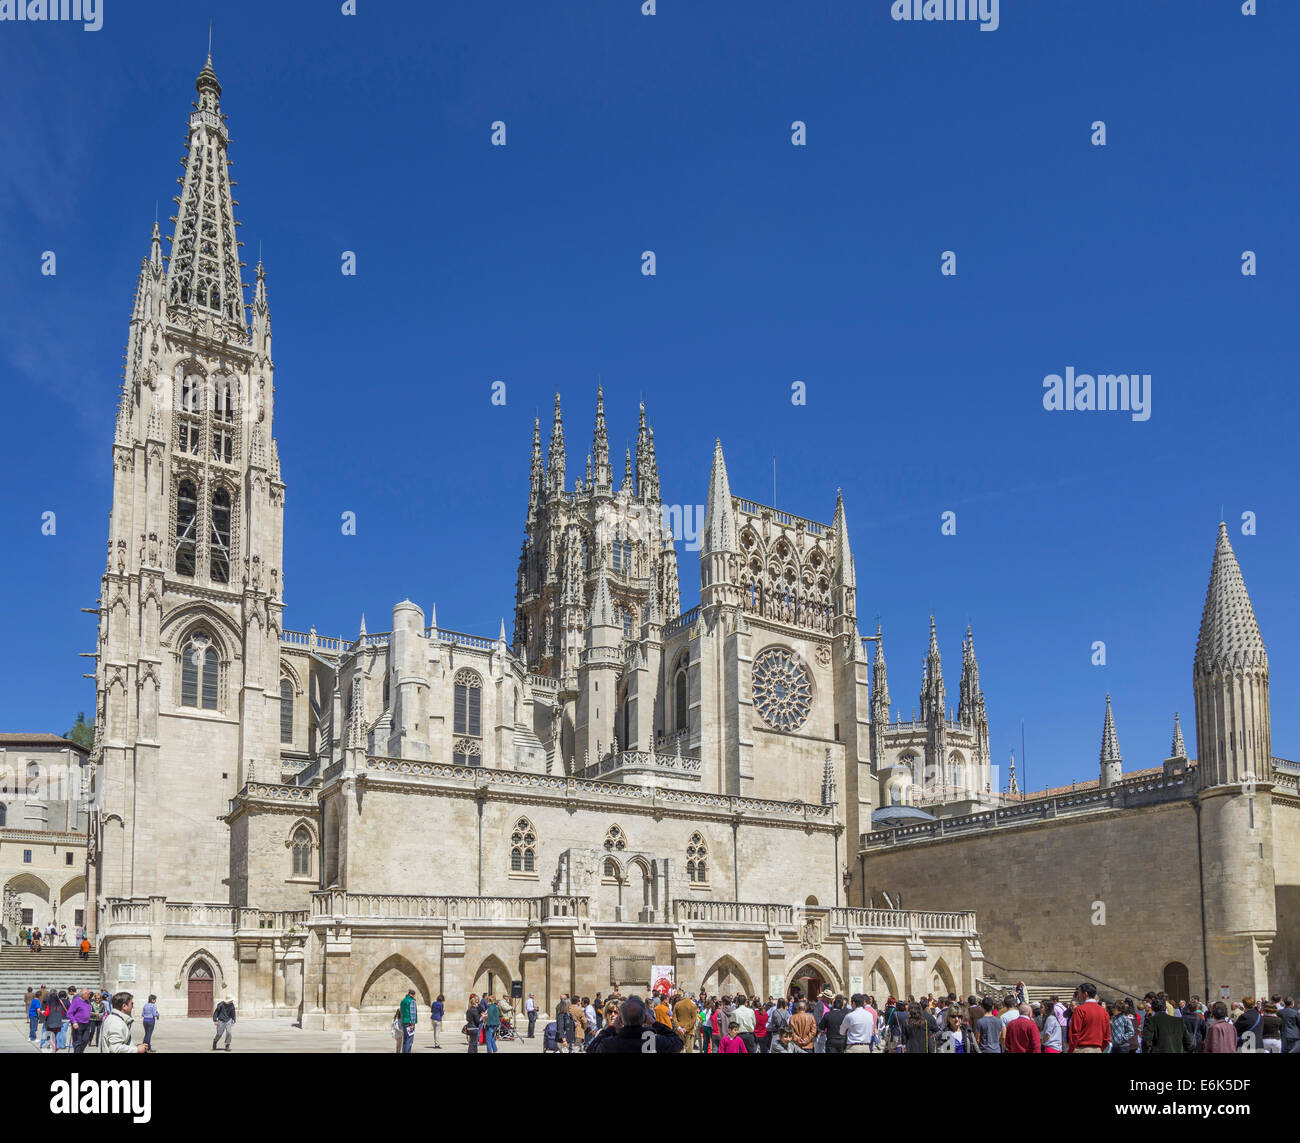 Burgos Cathedral, Burgos, Castile and León, Spain - Stock Image